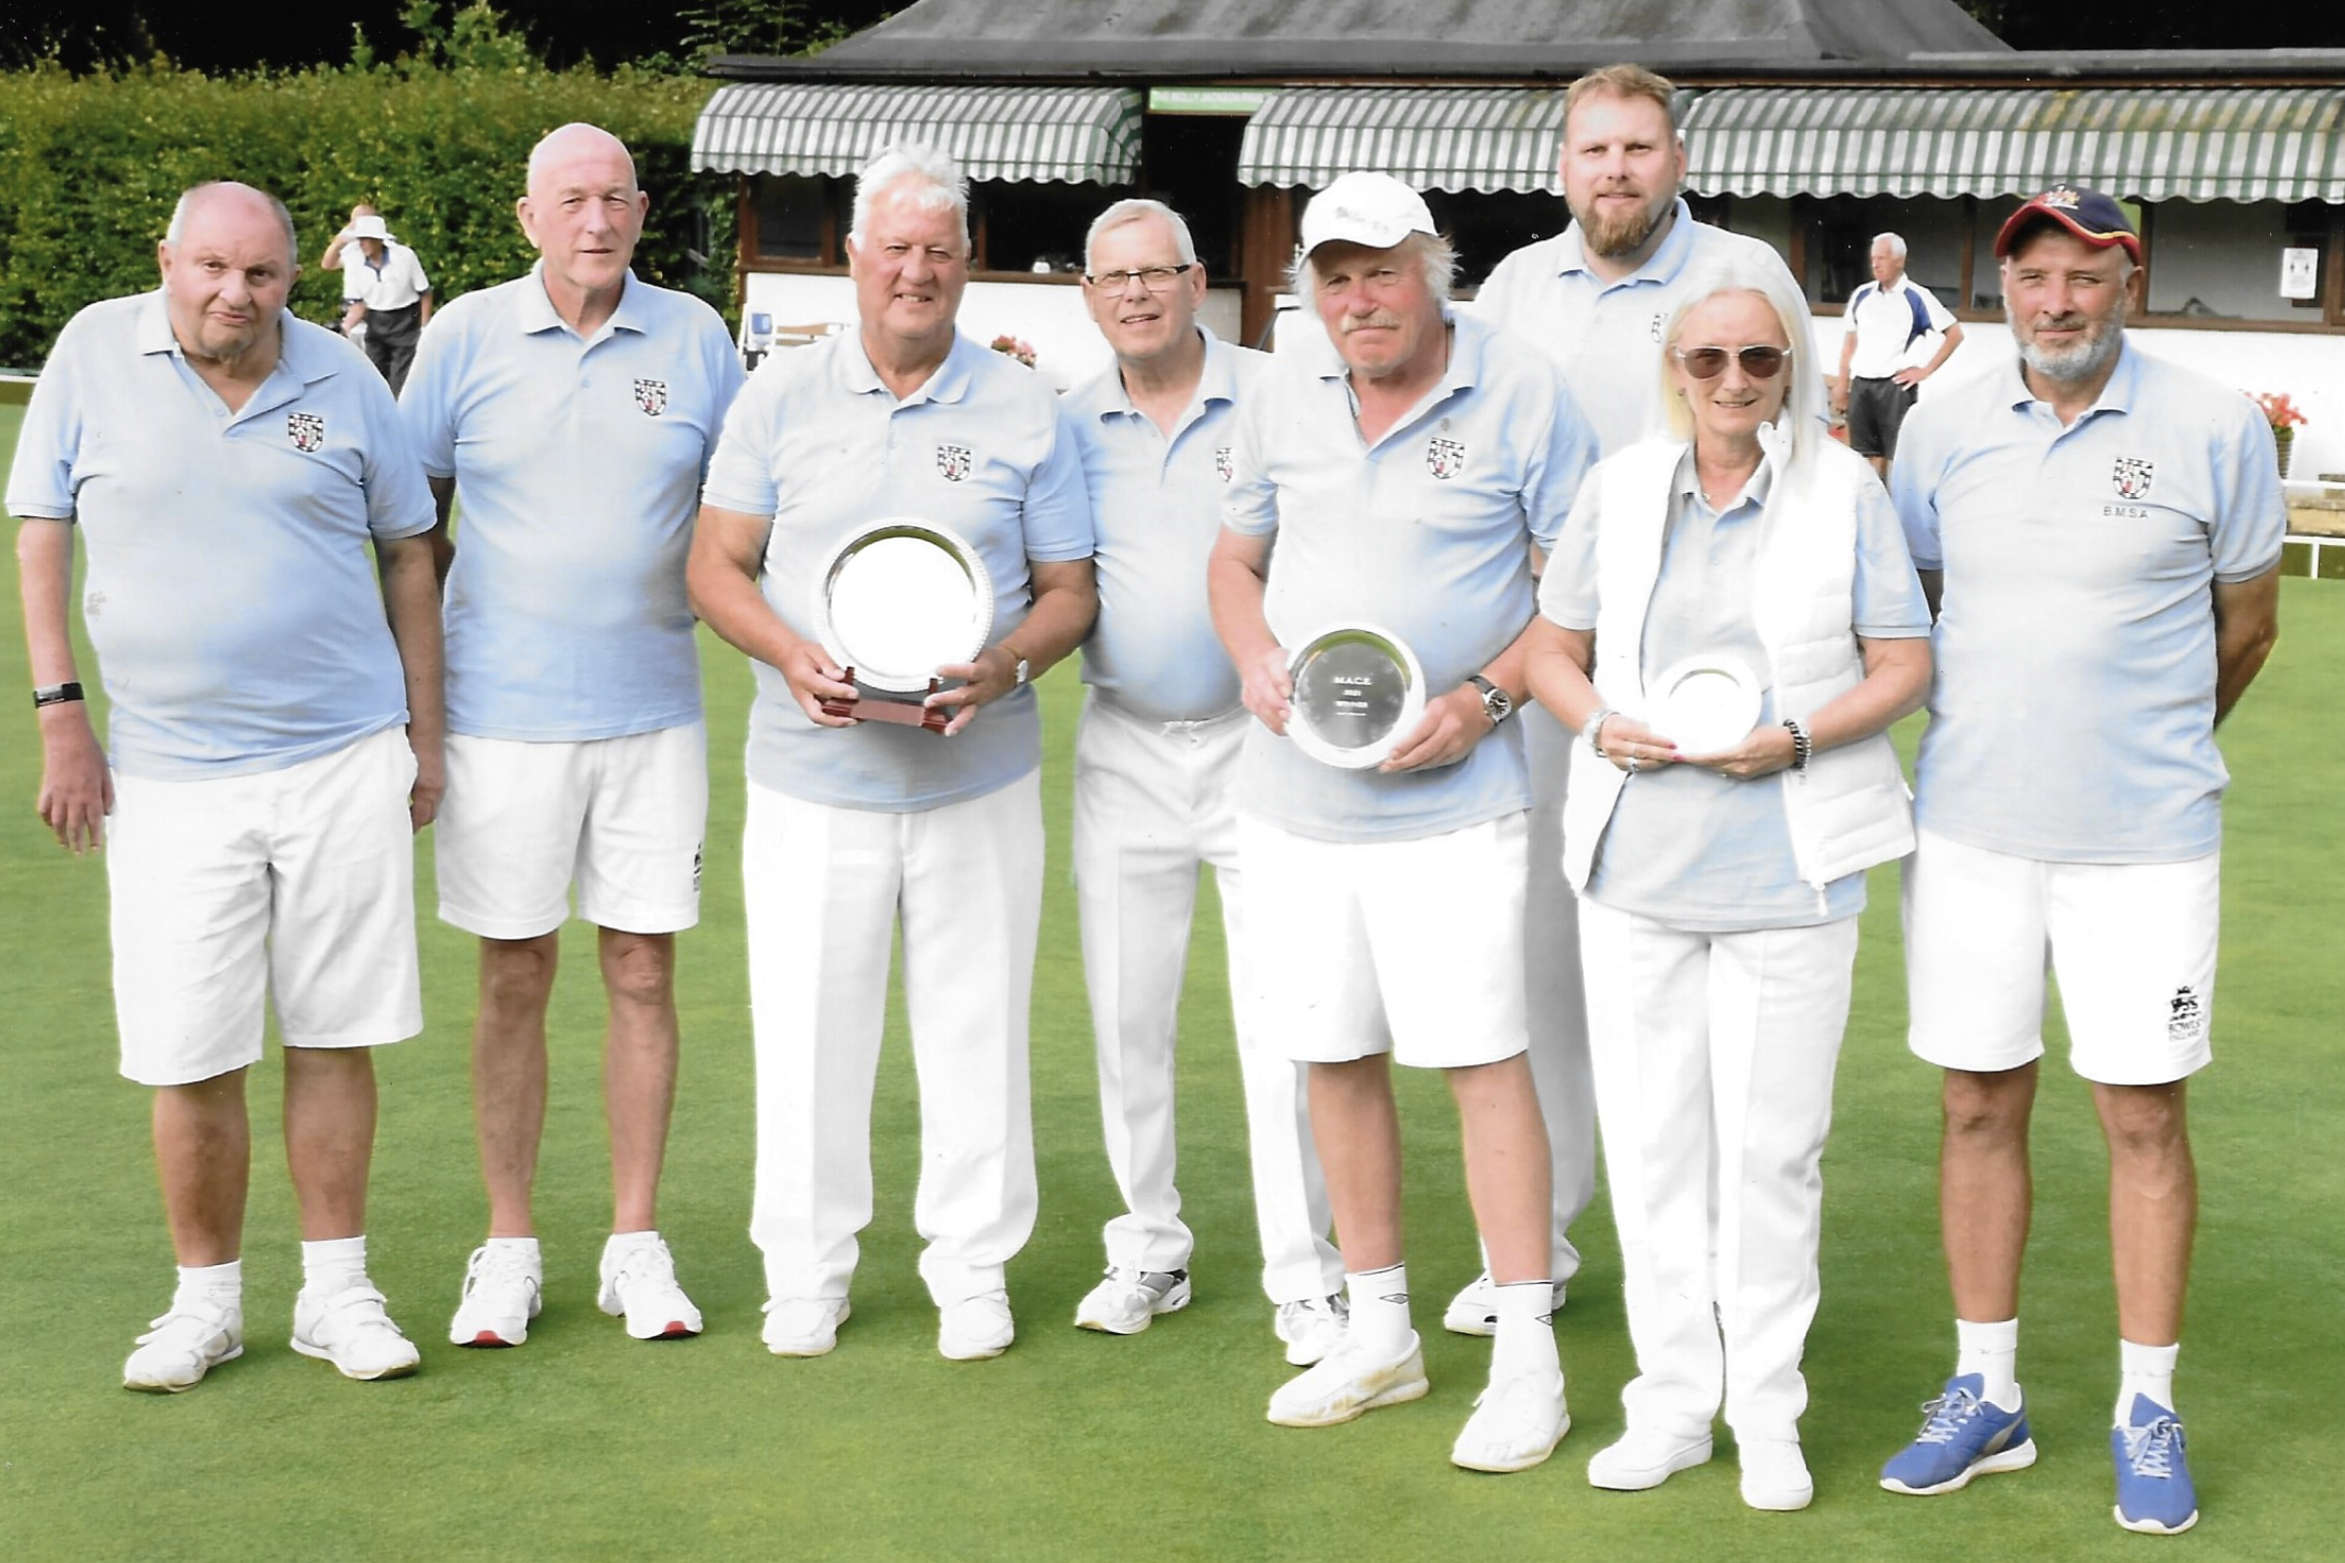 Success Again for the Bedfordshire Bowlers